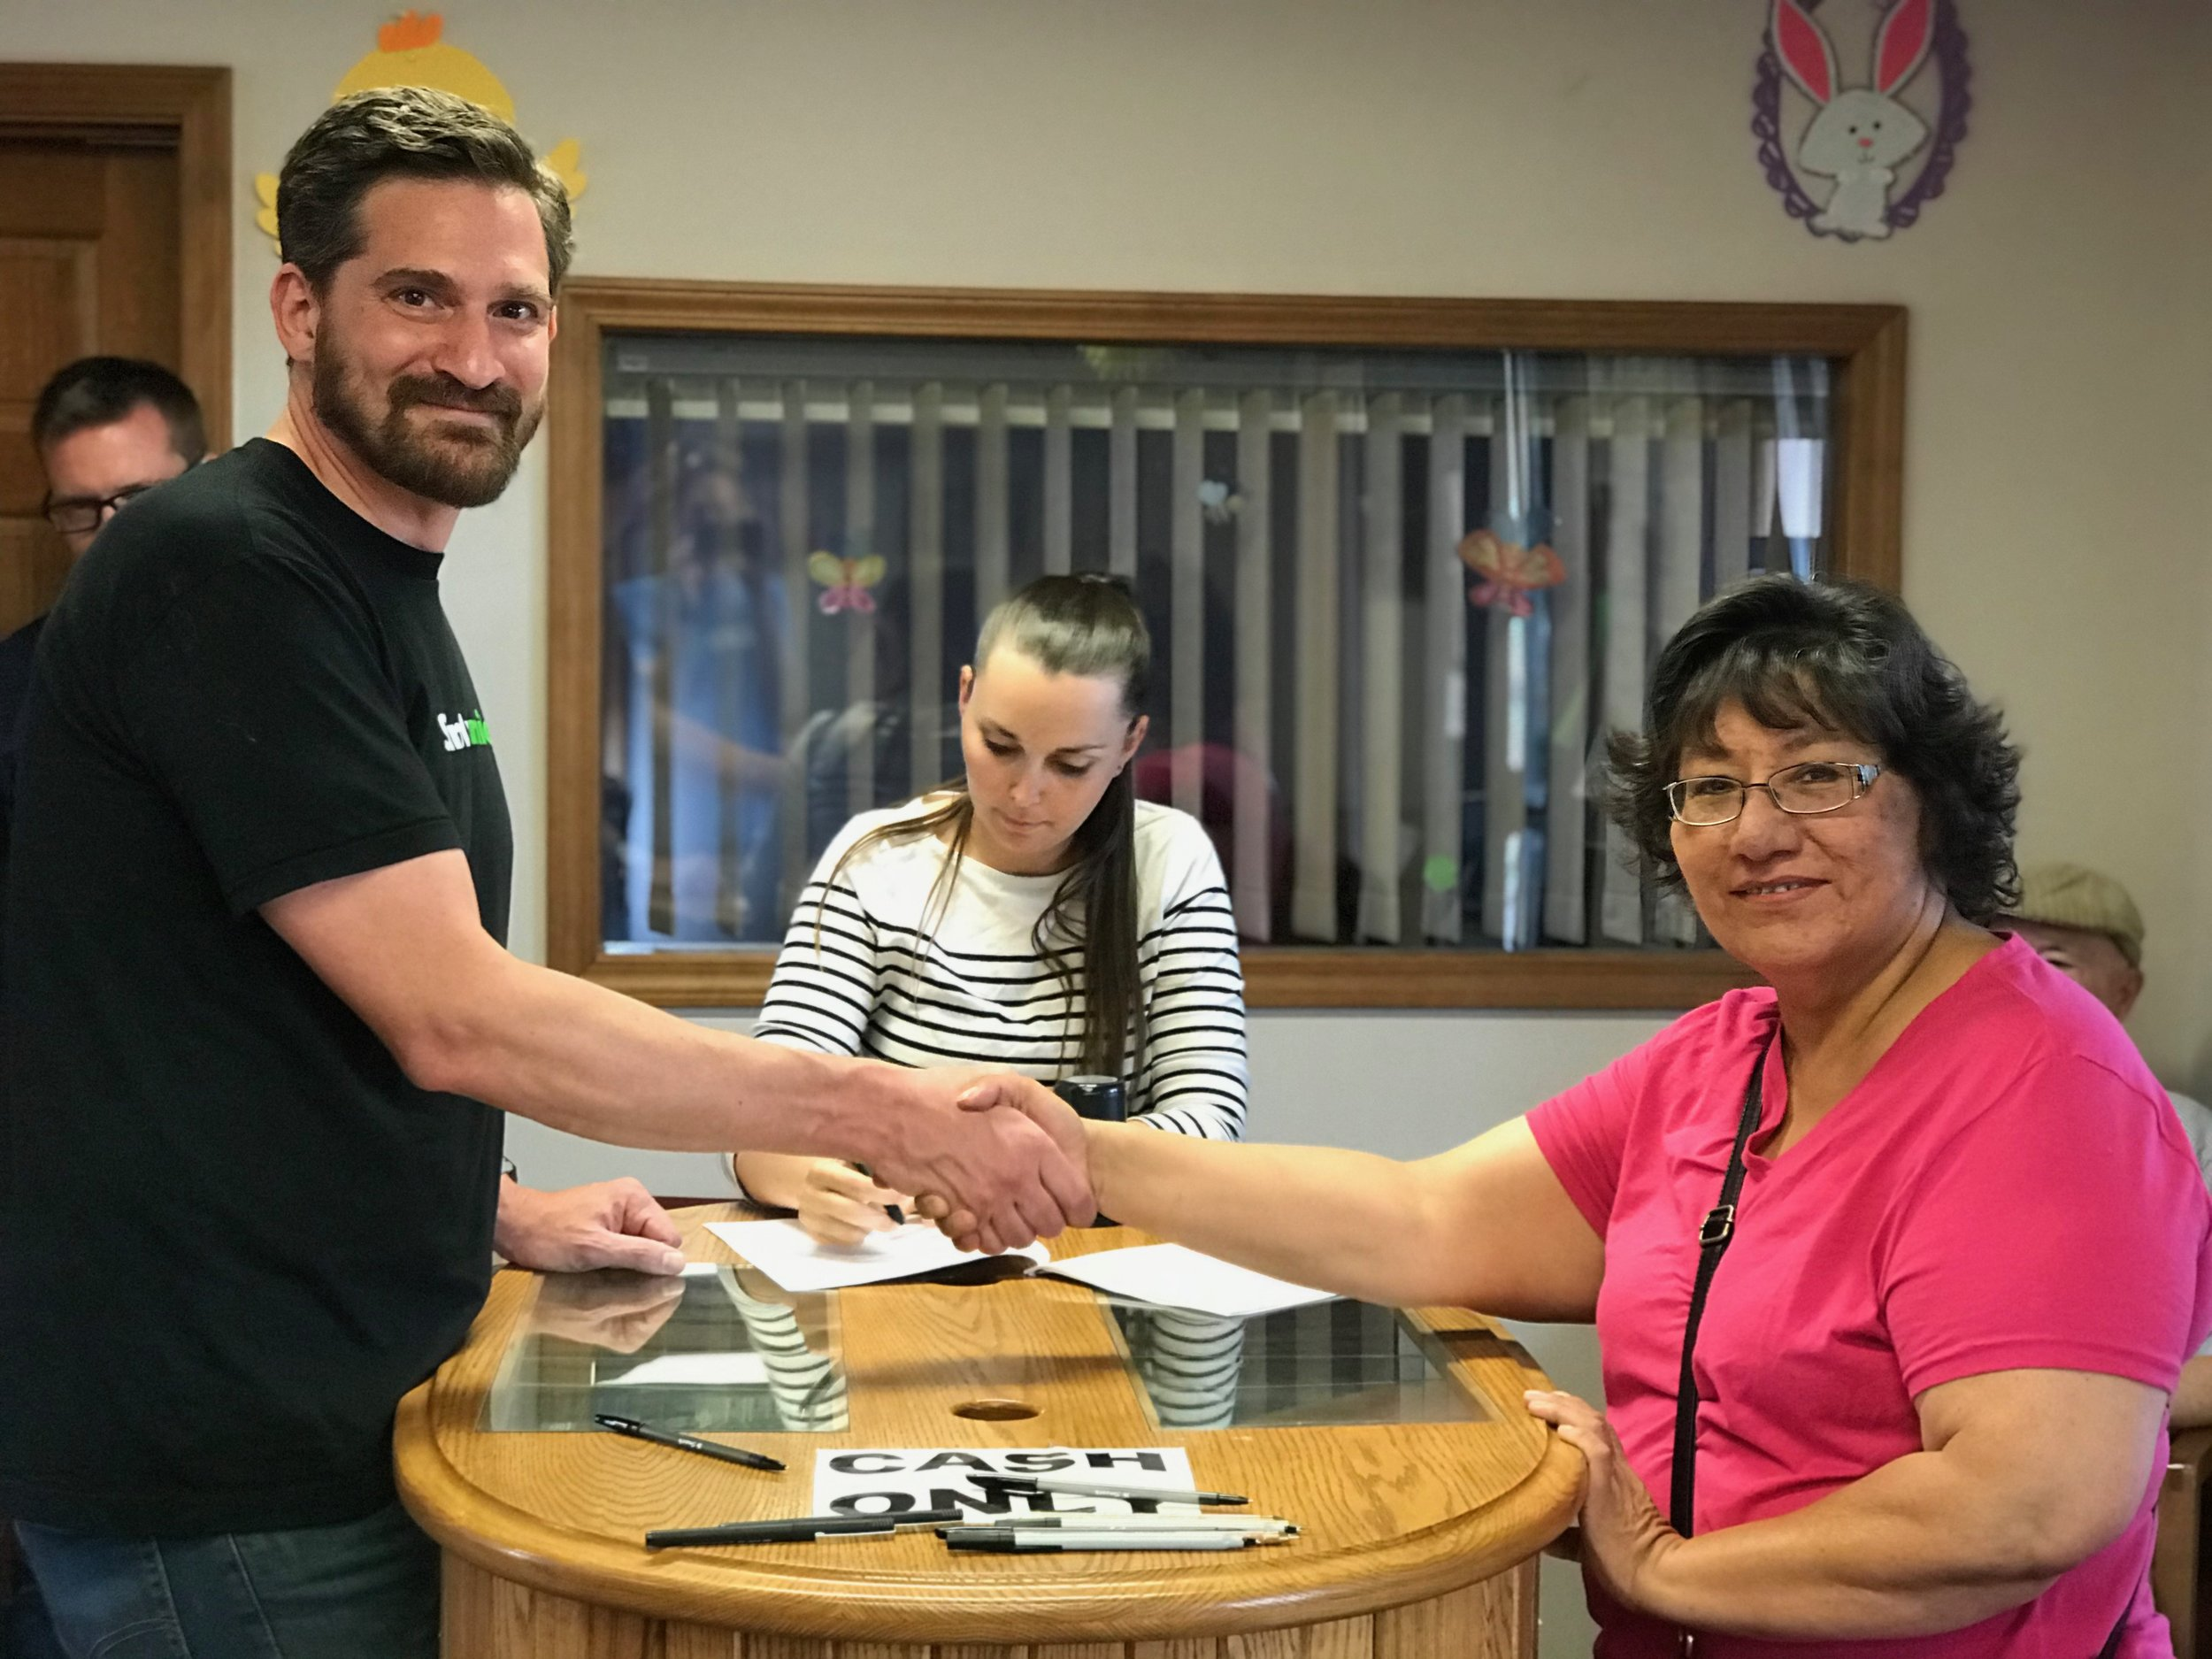 Deepening partnerships:  Bryan Nurnberger (left),Simply Smiles President and Founder and Toni Buffalo (right), Administrator of the Dakota Association of the United Church of Christ sign the 99-year lease agreement, allowing Simply Smiles to continue and expand its programming on the Cheyenne River Sioux Tribe Reservation in South Dakota.